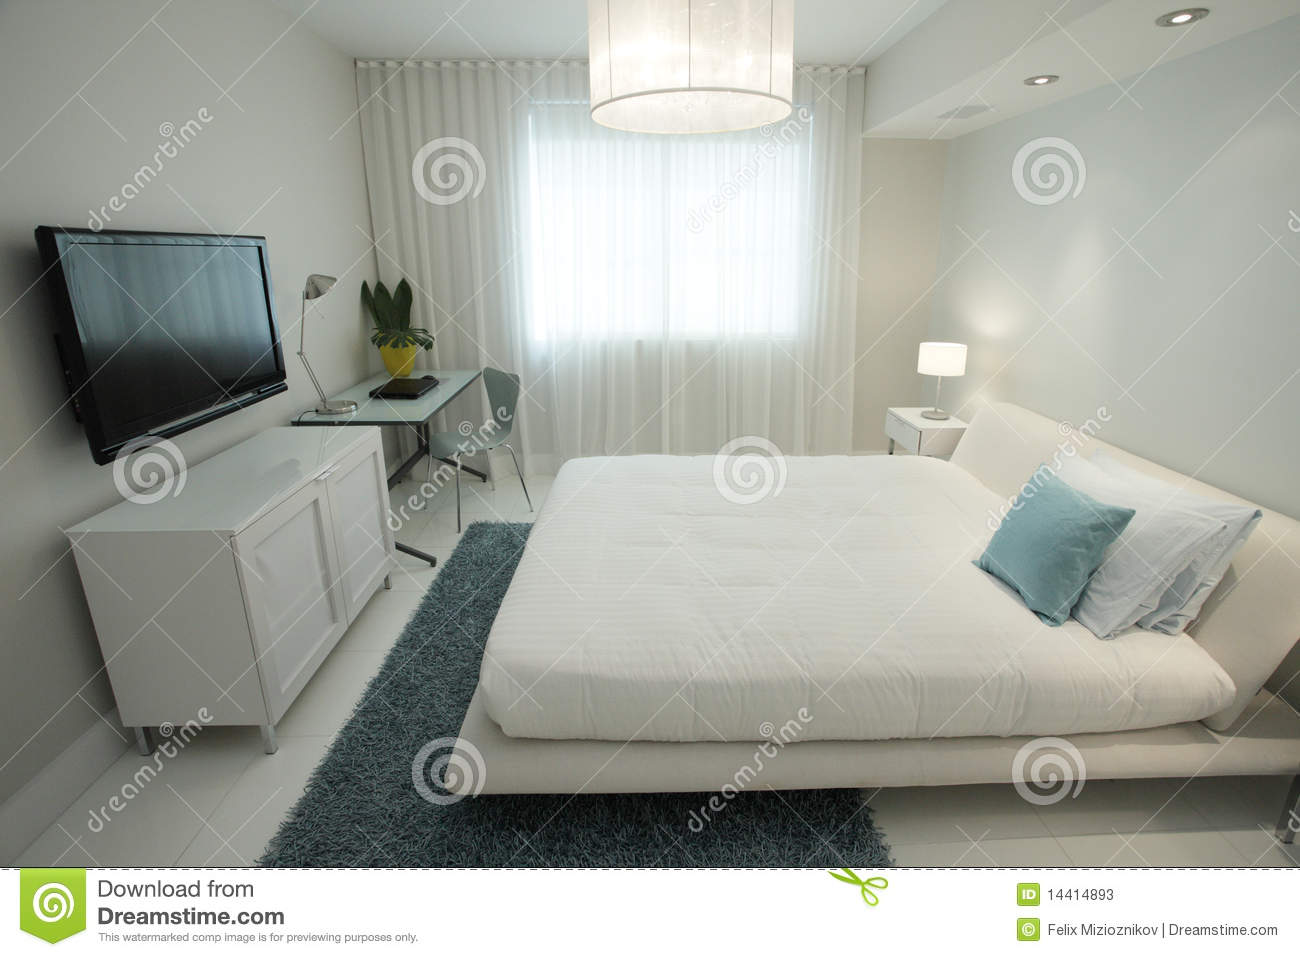 Camera da letto con una televisione di hd immagine stock immagine di base bedroom 14414893 - Tv in camera da letto ...